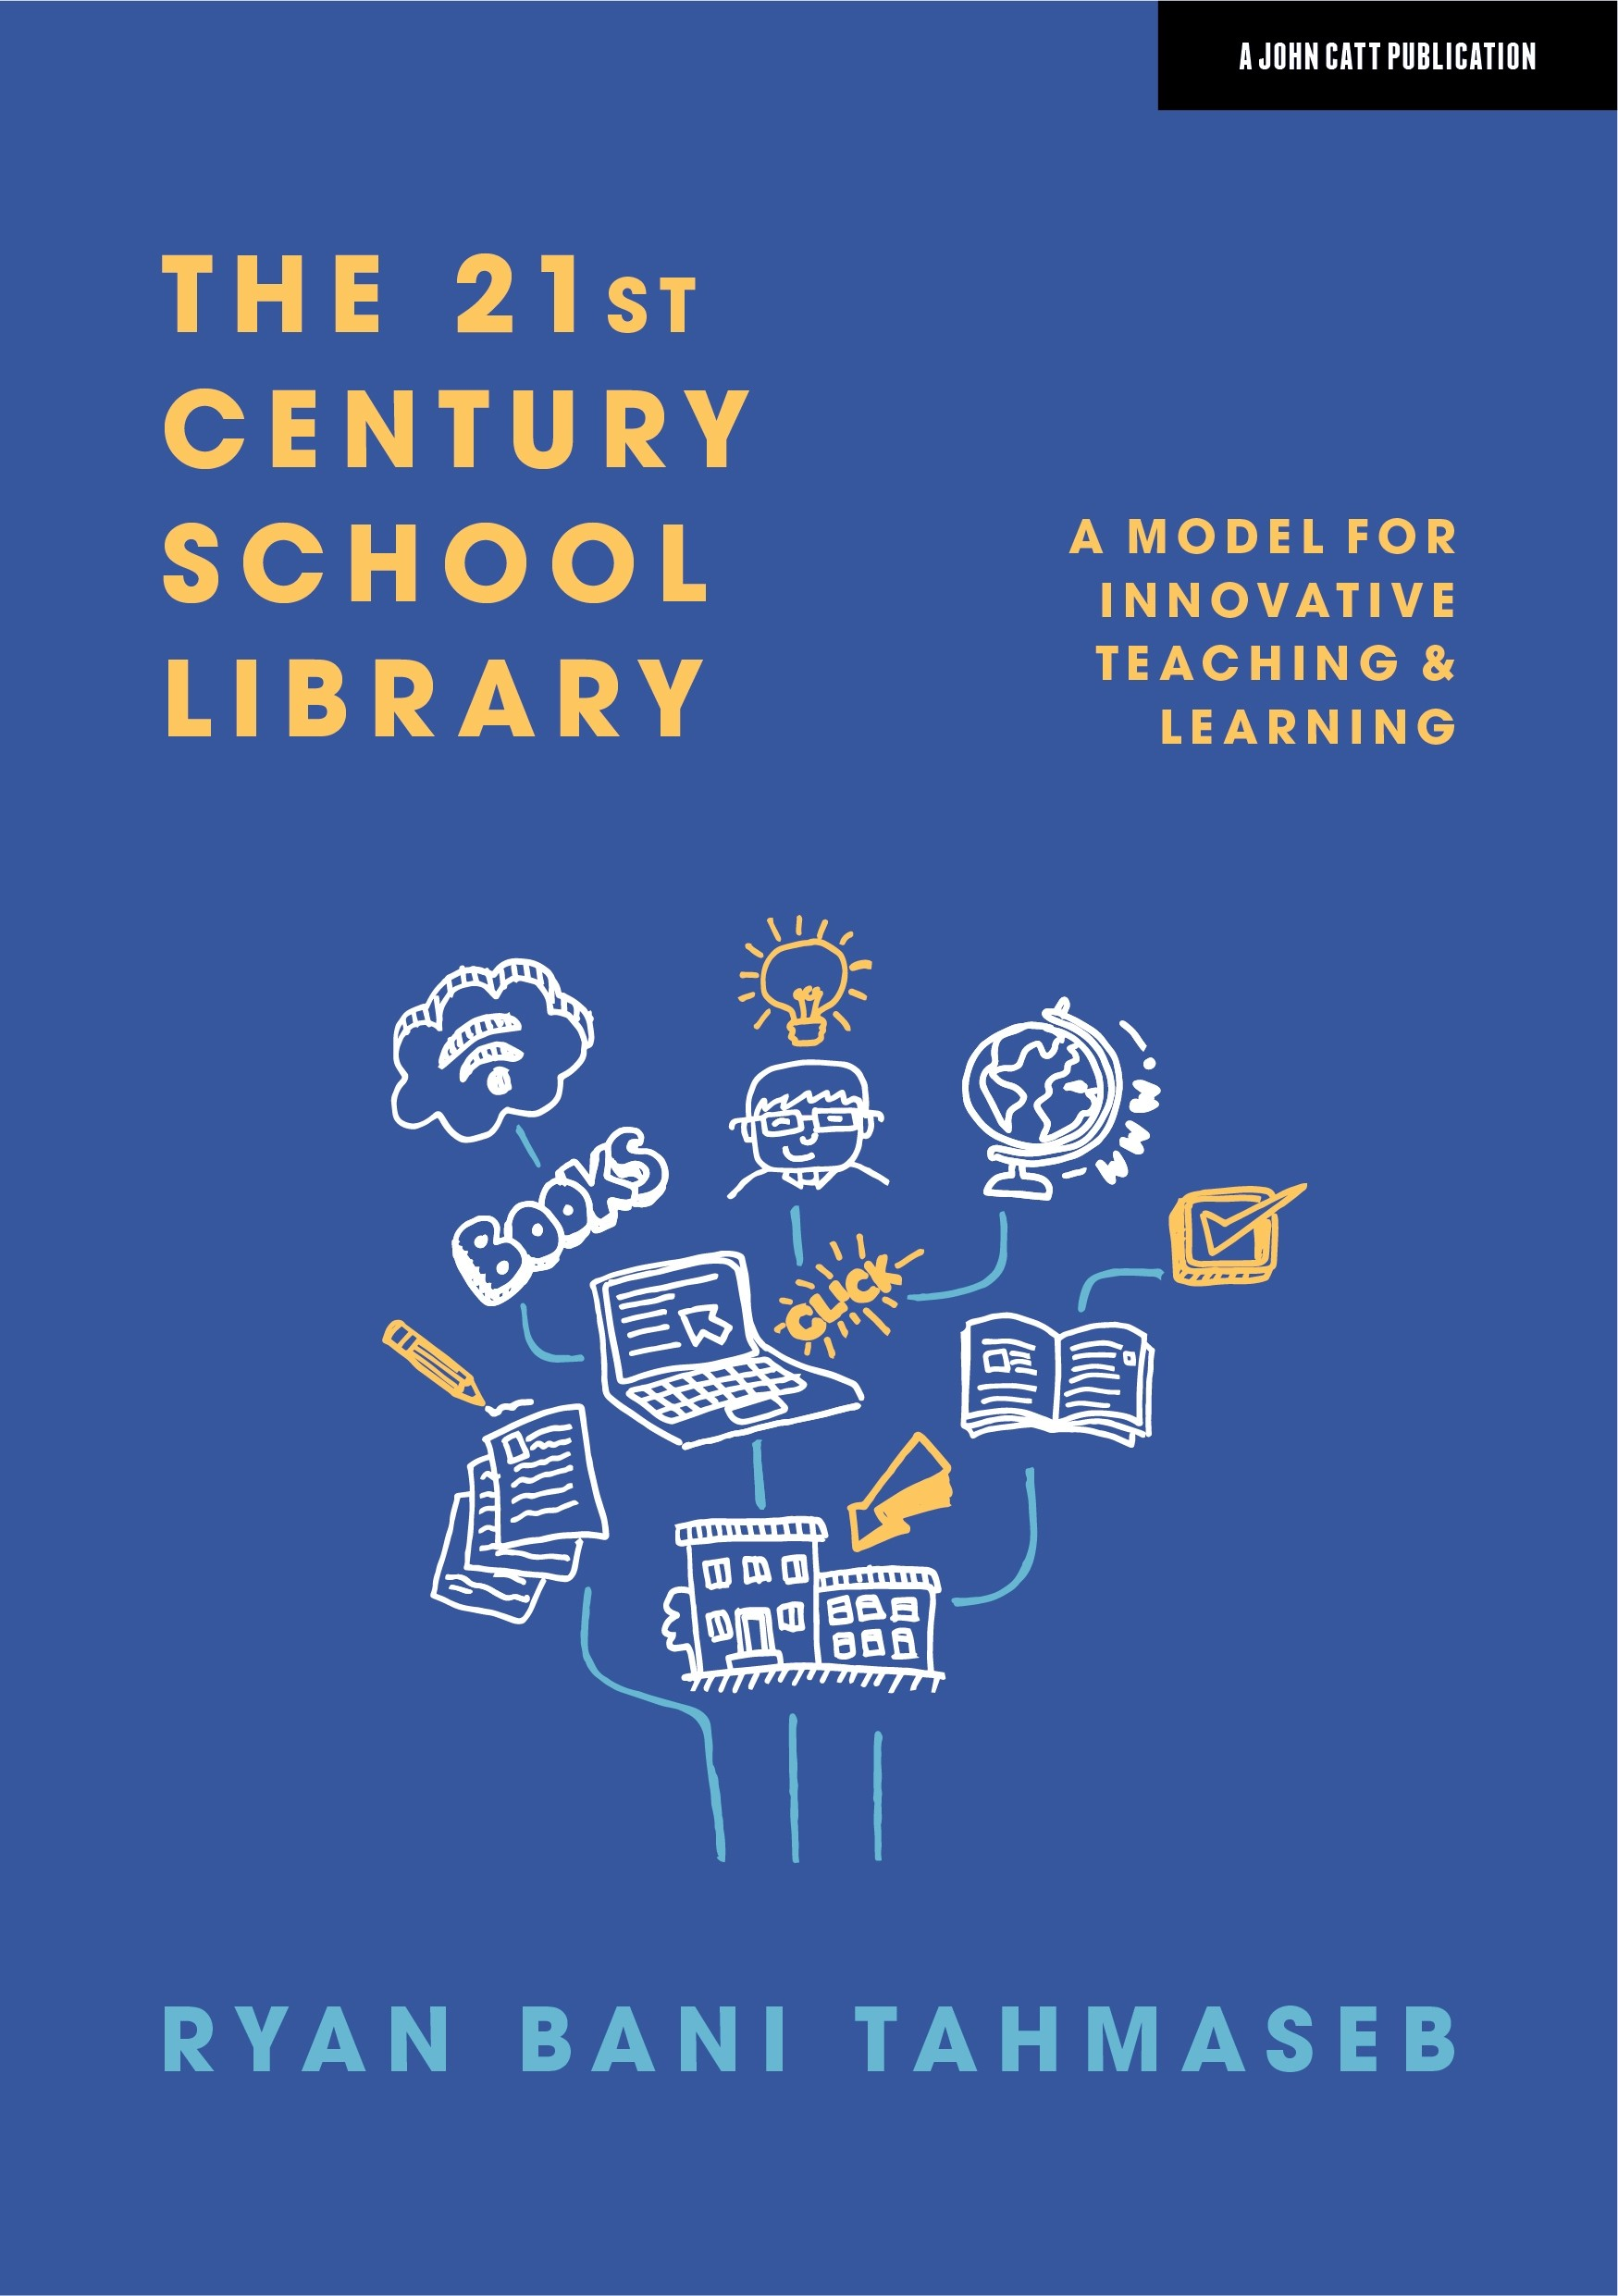 The 21st Century School Library: A Model for Innovative Teaching & Learning